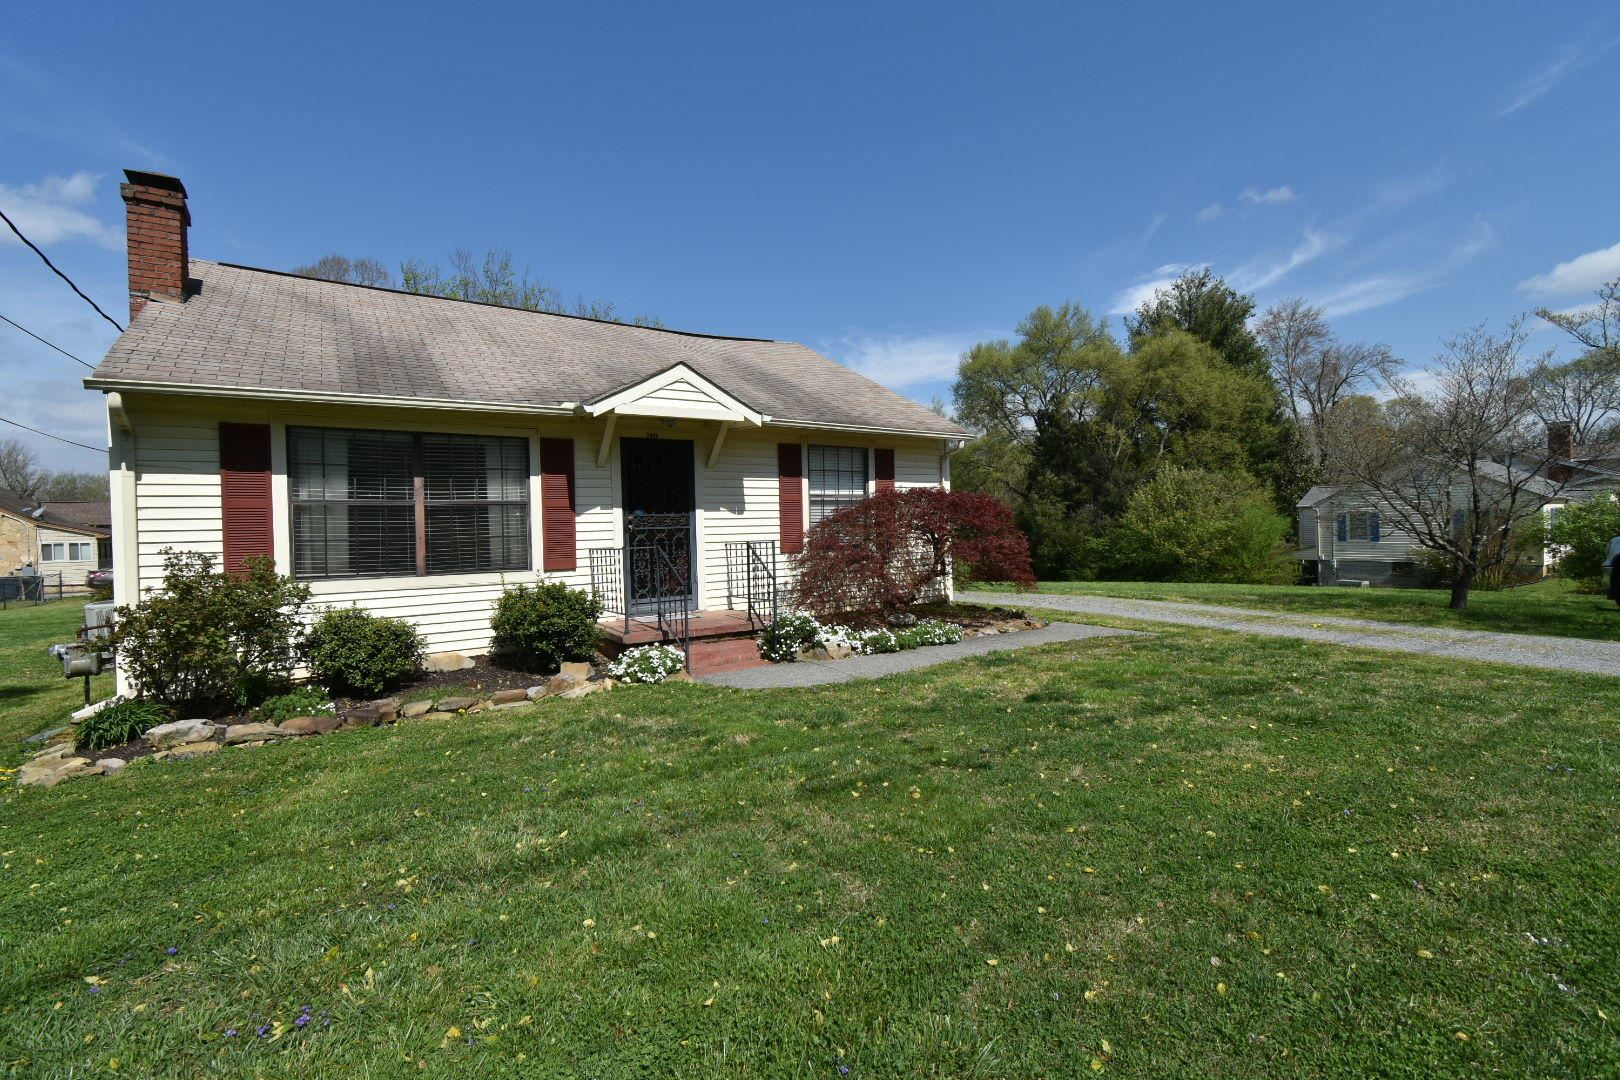 Photo of 2909 Forestdale Ave, Knoxville, TN 37917 (MLS # 1112574)